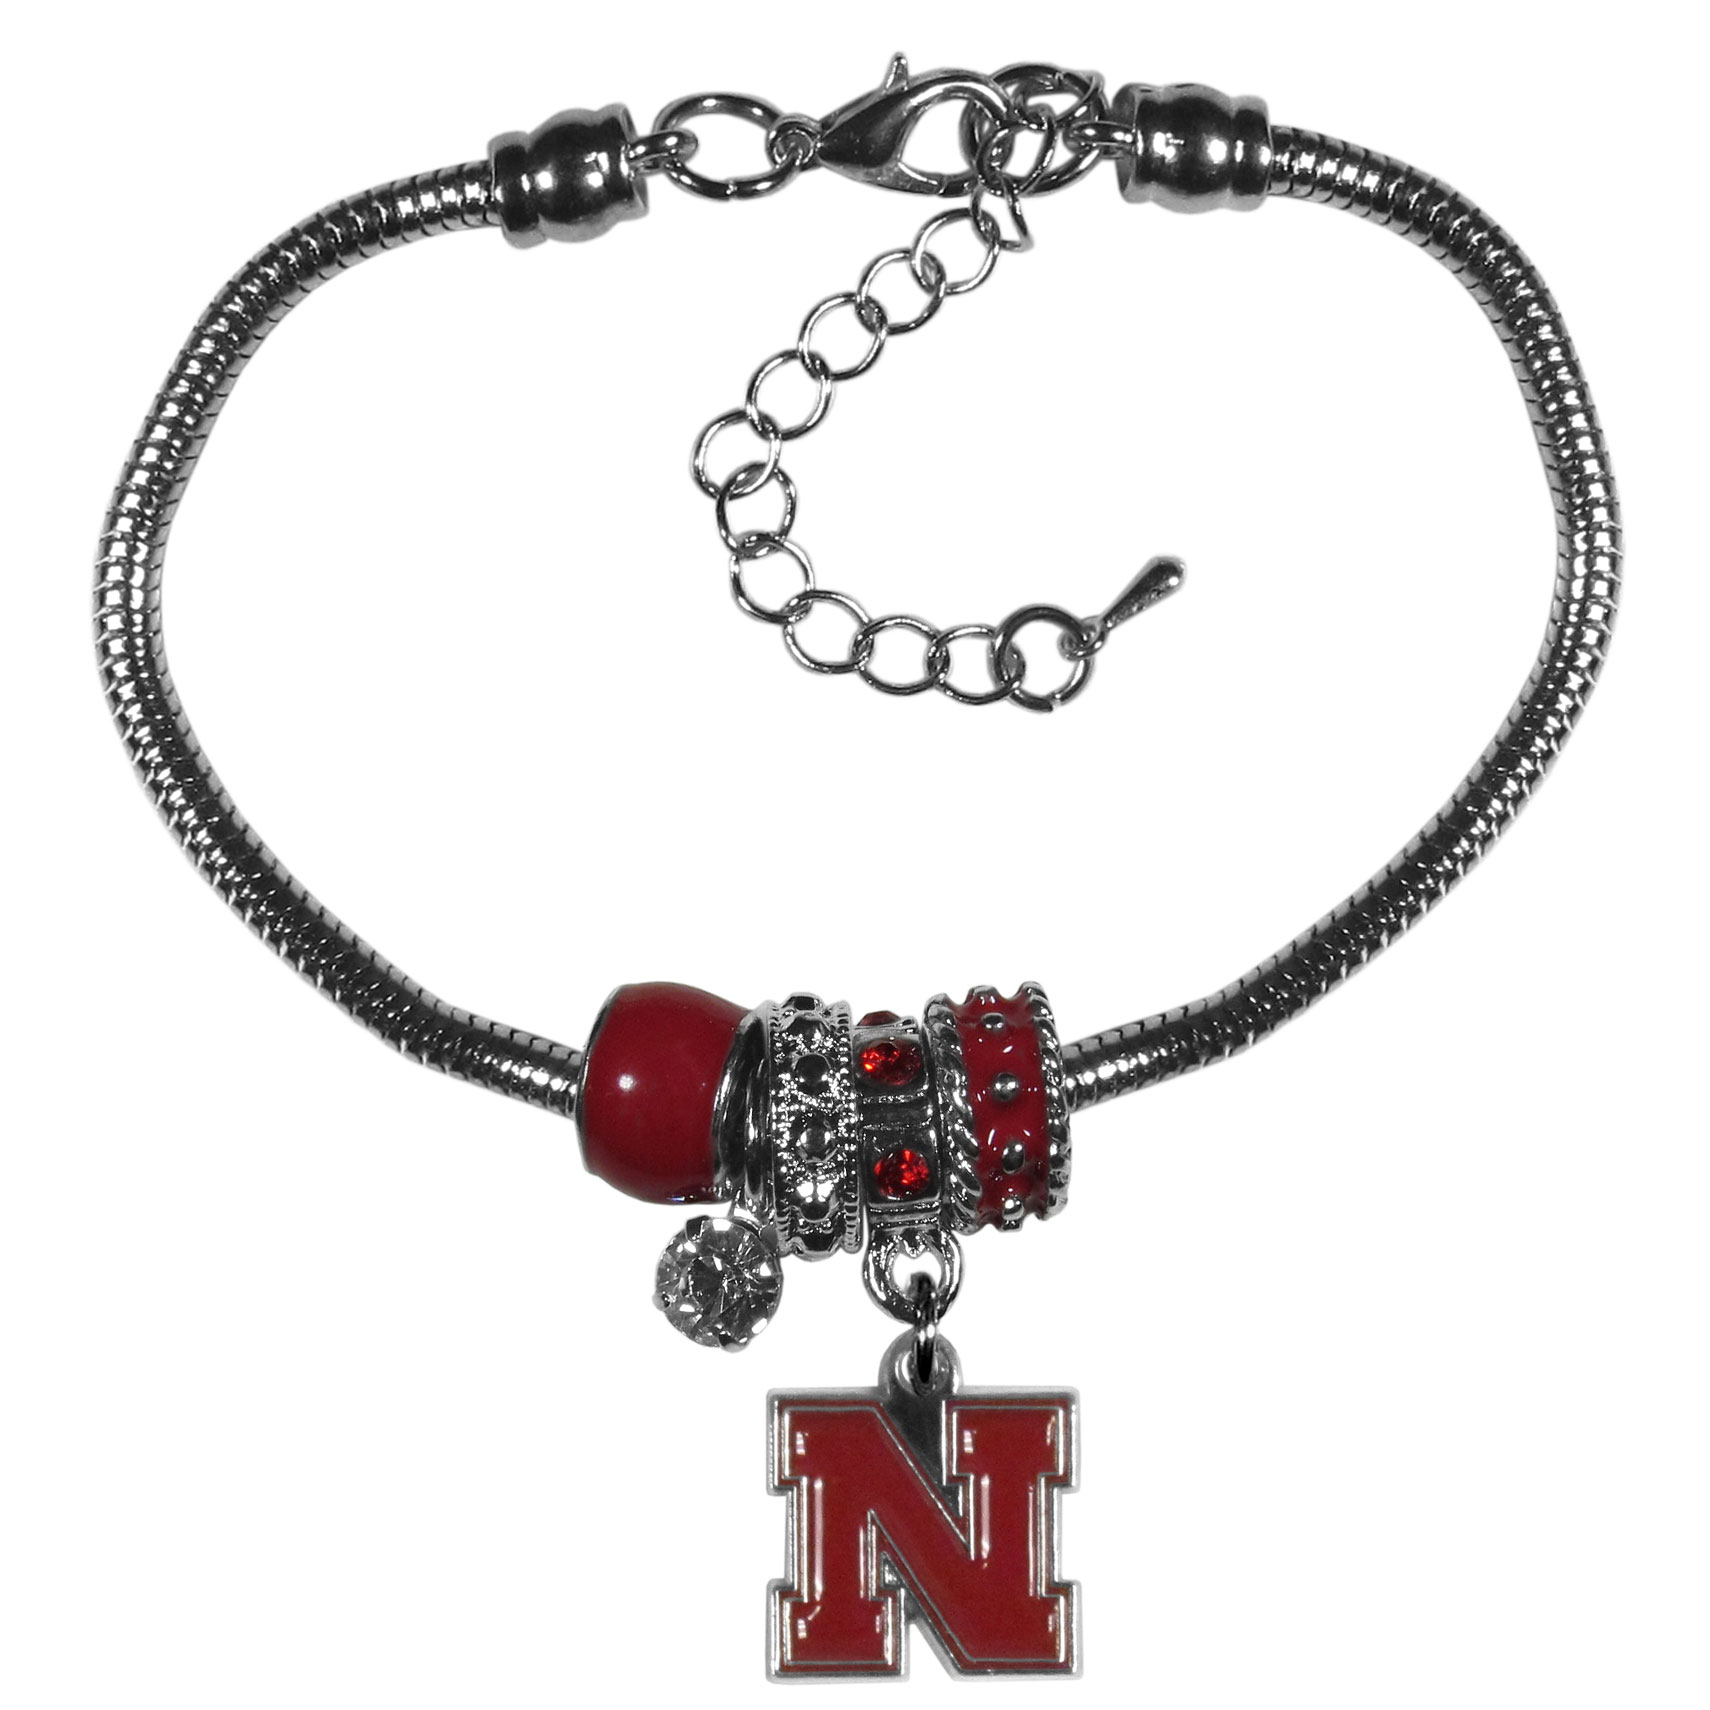 Nebraska Cornhuskers Euro Bead Bracelet - We have combined the wildly popular Euro style beads with your favorite team to create our  Nebraska Cornhuskers bead bracelet. The 7.5 inch snake chain with 2 inch extender features 4 Euro beads with enameled team colors and rhinestone accents with a high polish, nickel free charm and rhinestone charm. Perfect way to show off your team pride.